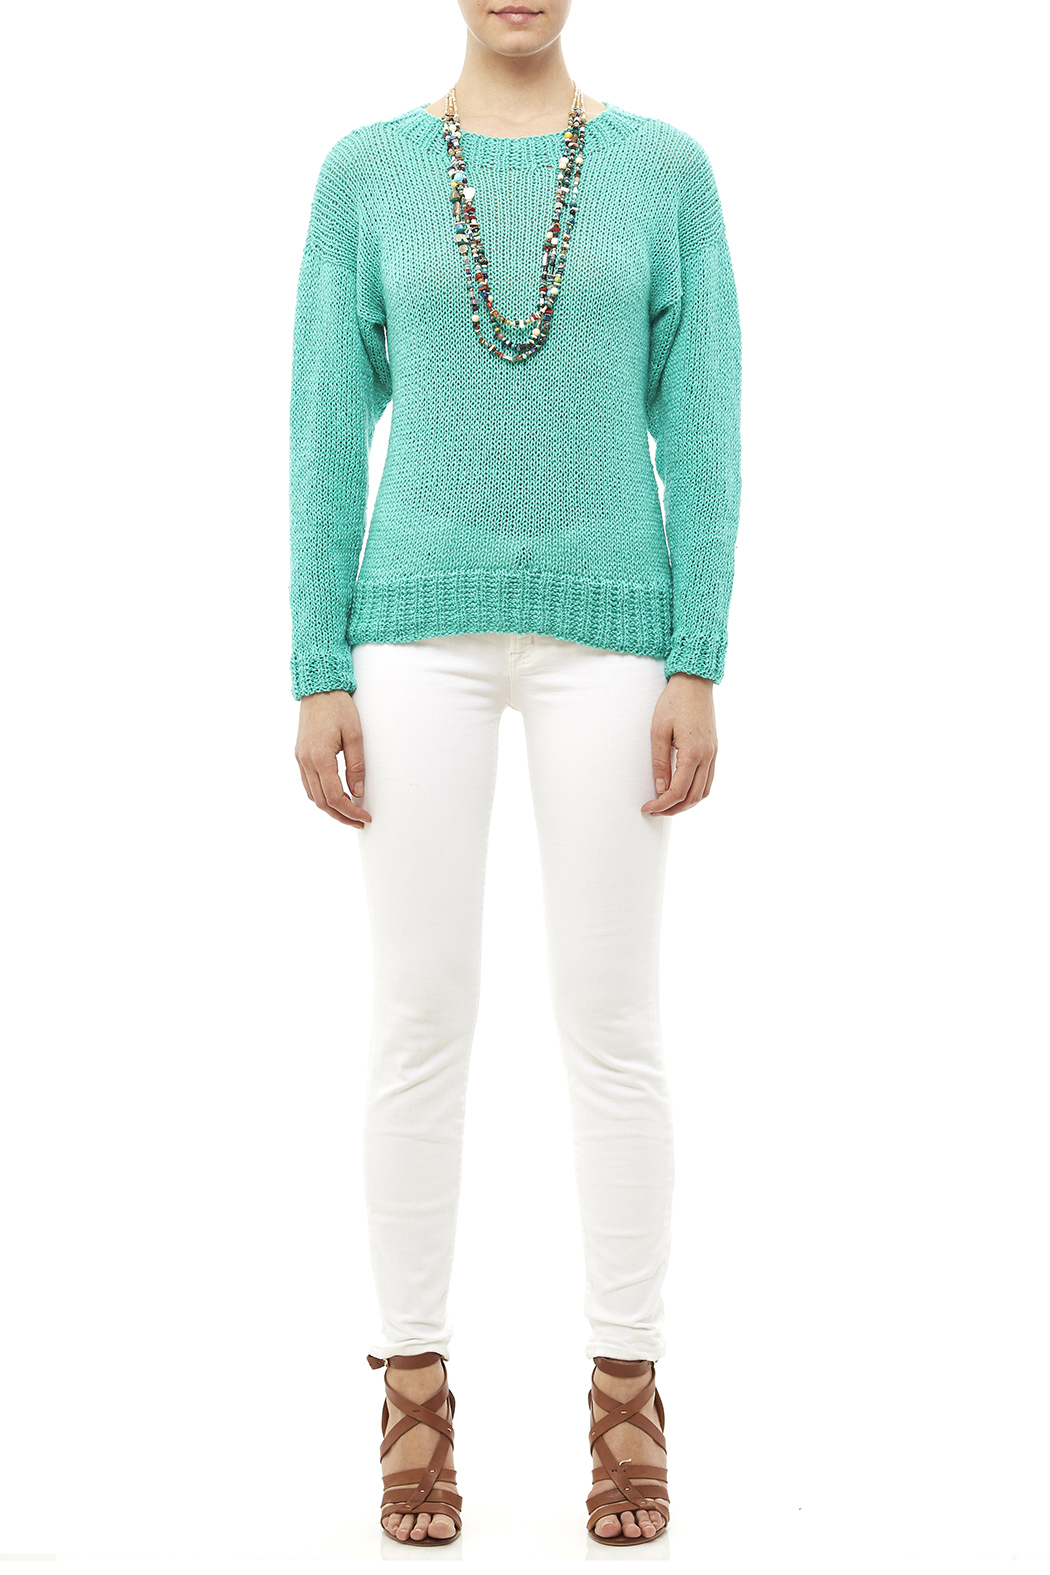 DC KNITS Comfy Cotton Turquoise Sweater - Front Full Image